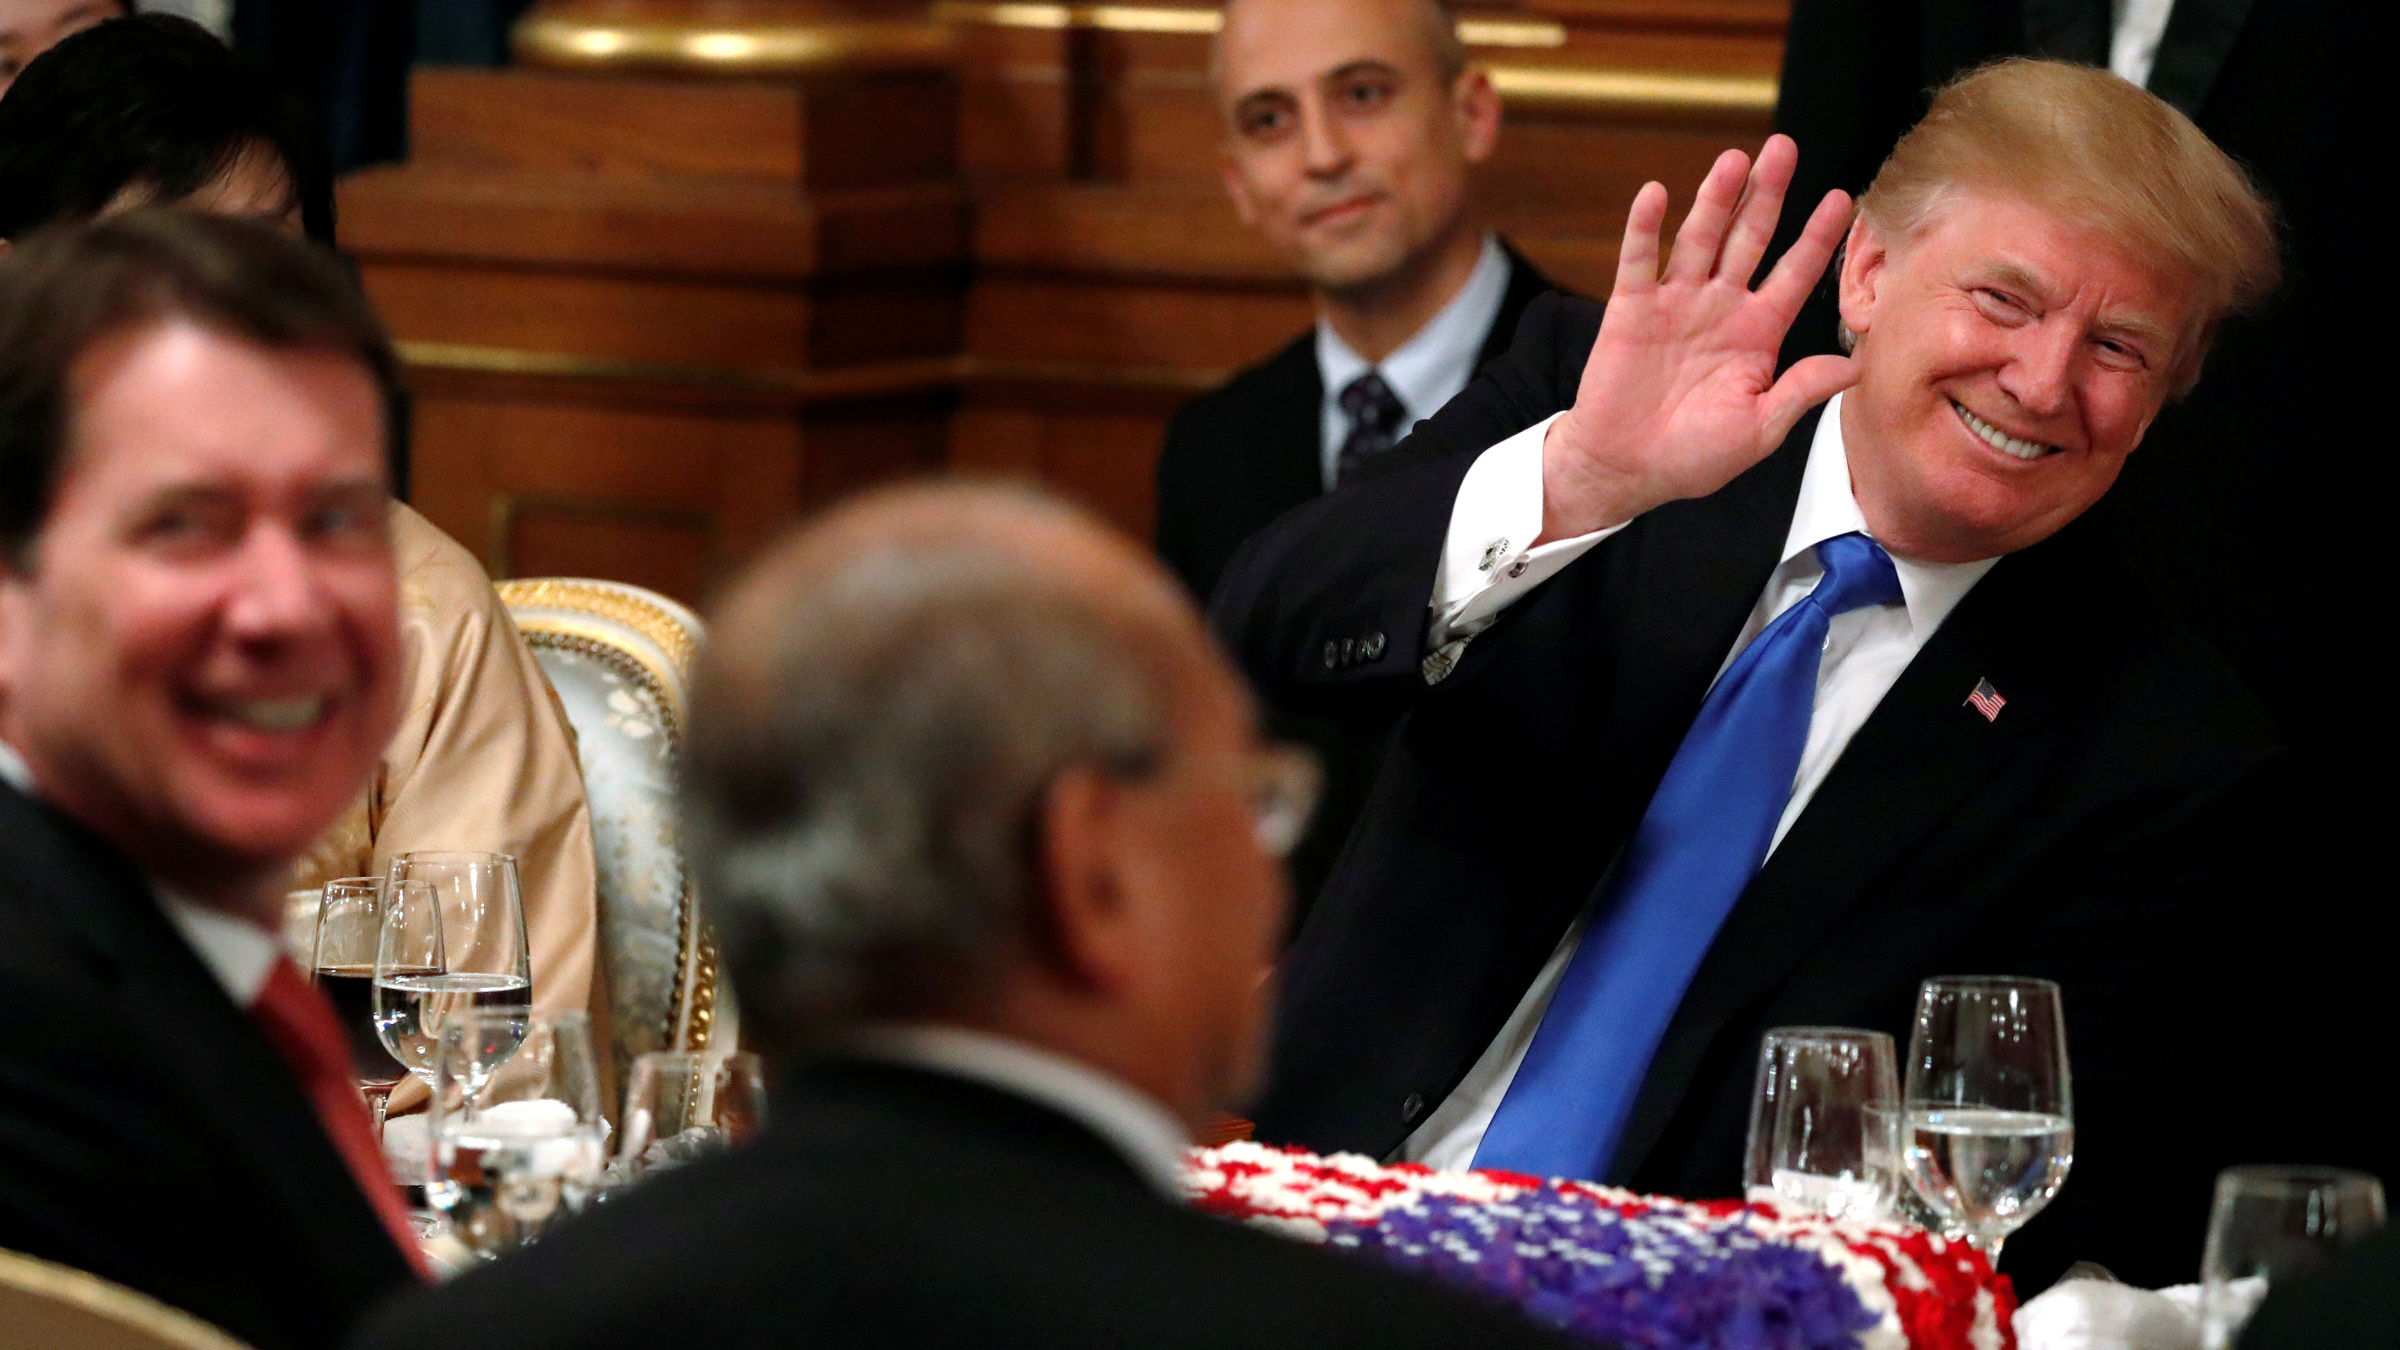 U.S. President Donald Trump waves to an attendee at an official dinner for thrown in his honor by Japan's Prime Minister Shinzo Abe at Akasaka Palace in Tokyo, Japan November 6, 2017.